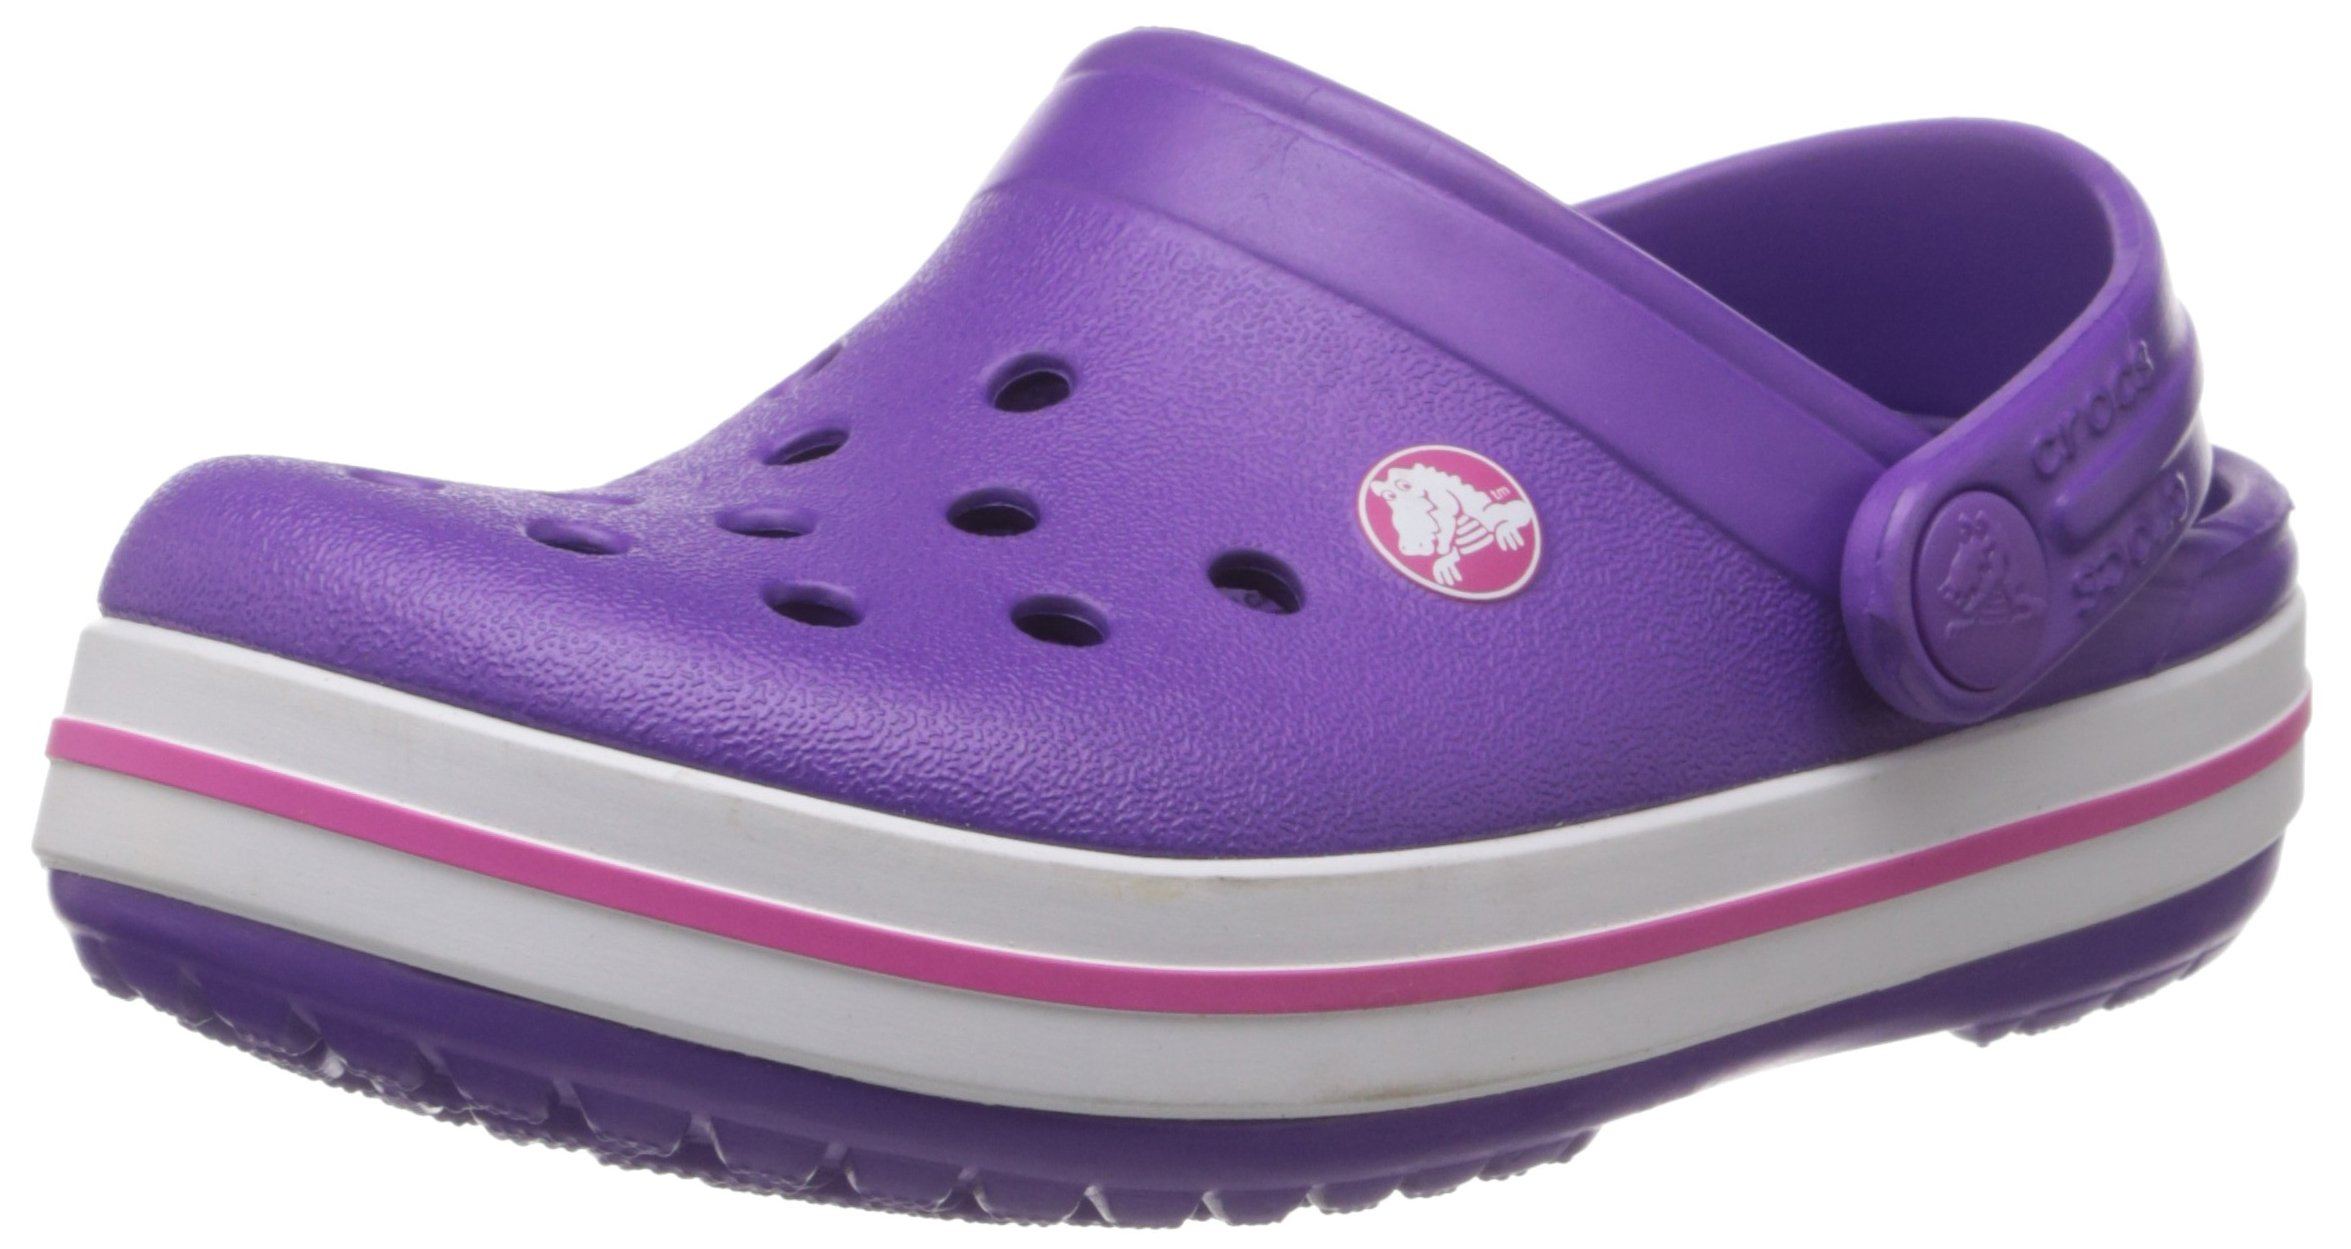 Crocs Crocband Kids Clog (Toddler/Little Kid), Neon Purple/Neon Magenta, 1 M US Little Kid by Crocs